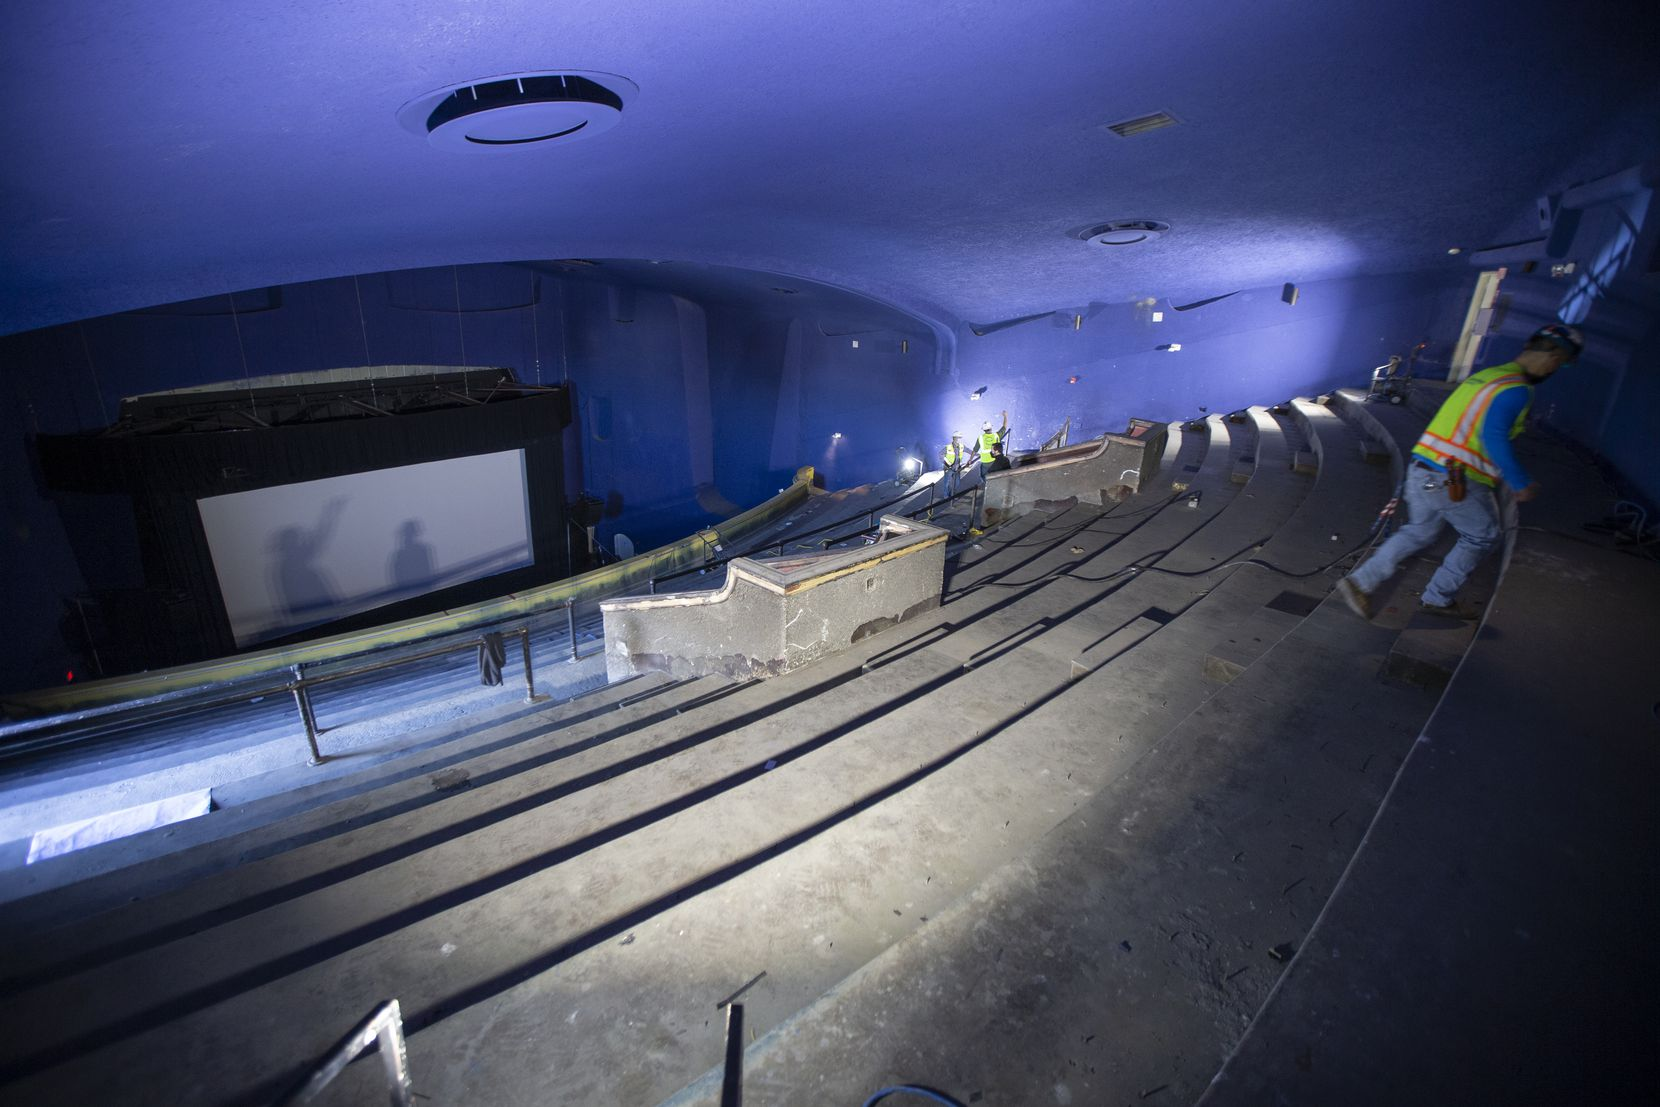 The new theater will be accessible through the balcony's original stairwell, which has been closed to the public for 40 years.